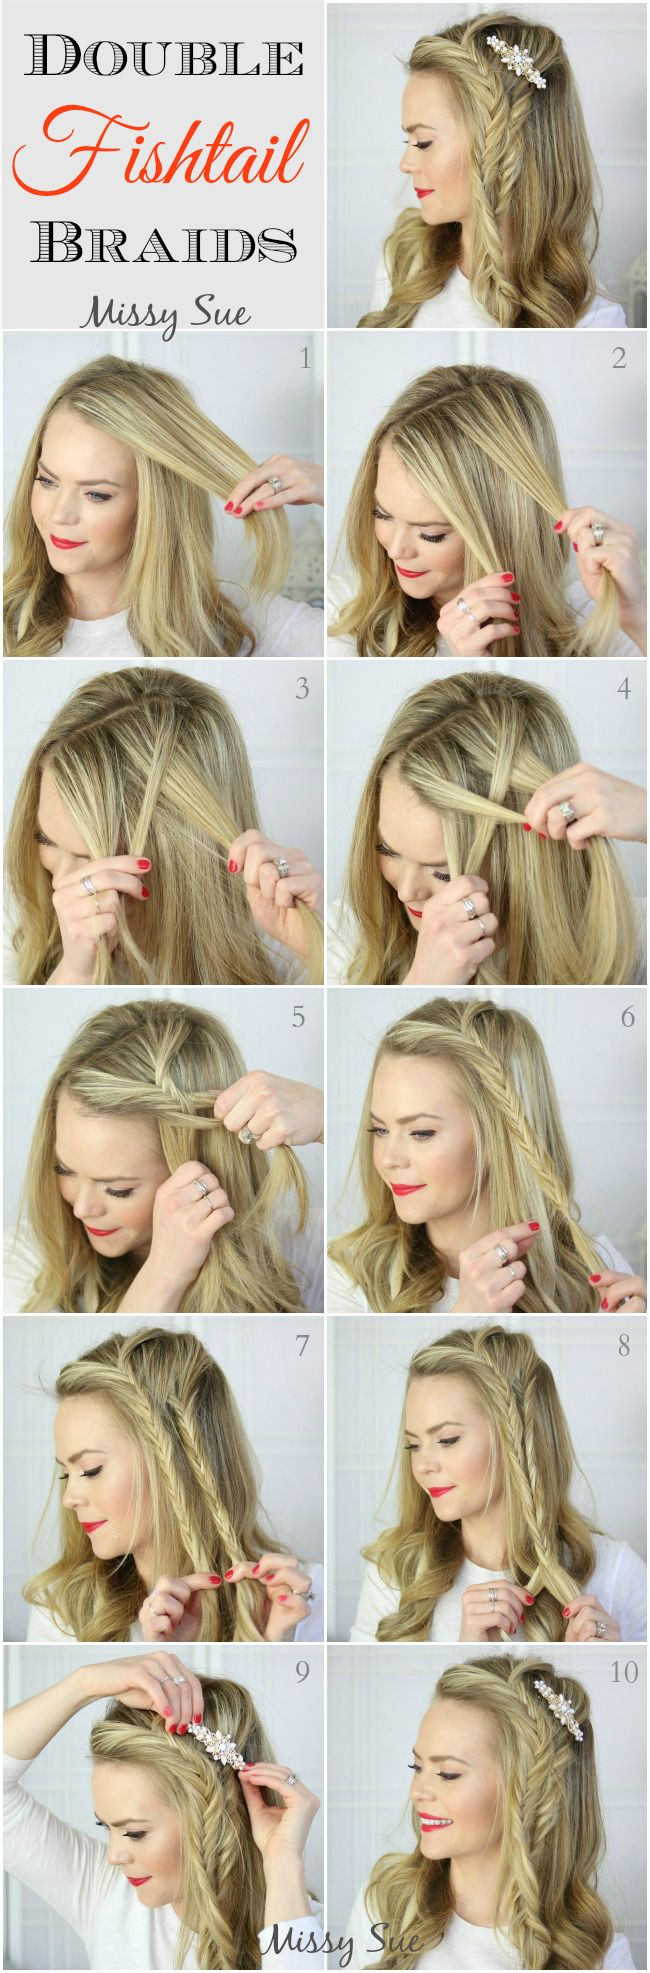 best hair images on pinterest coiffure facile cute hairstyles